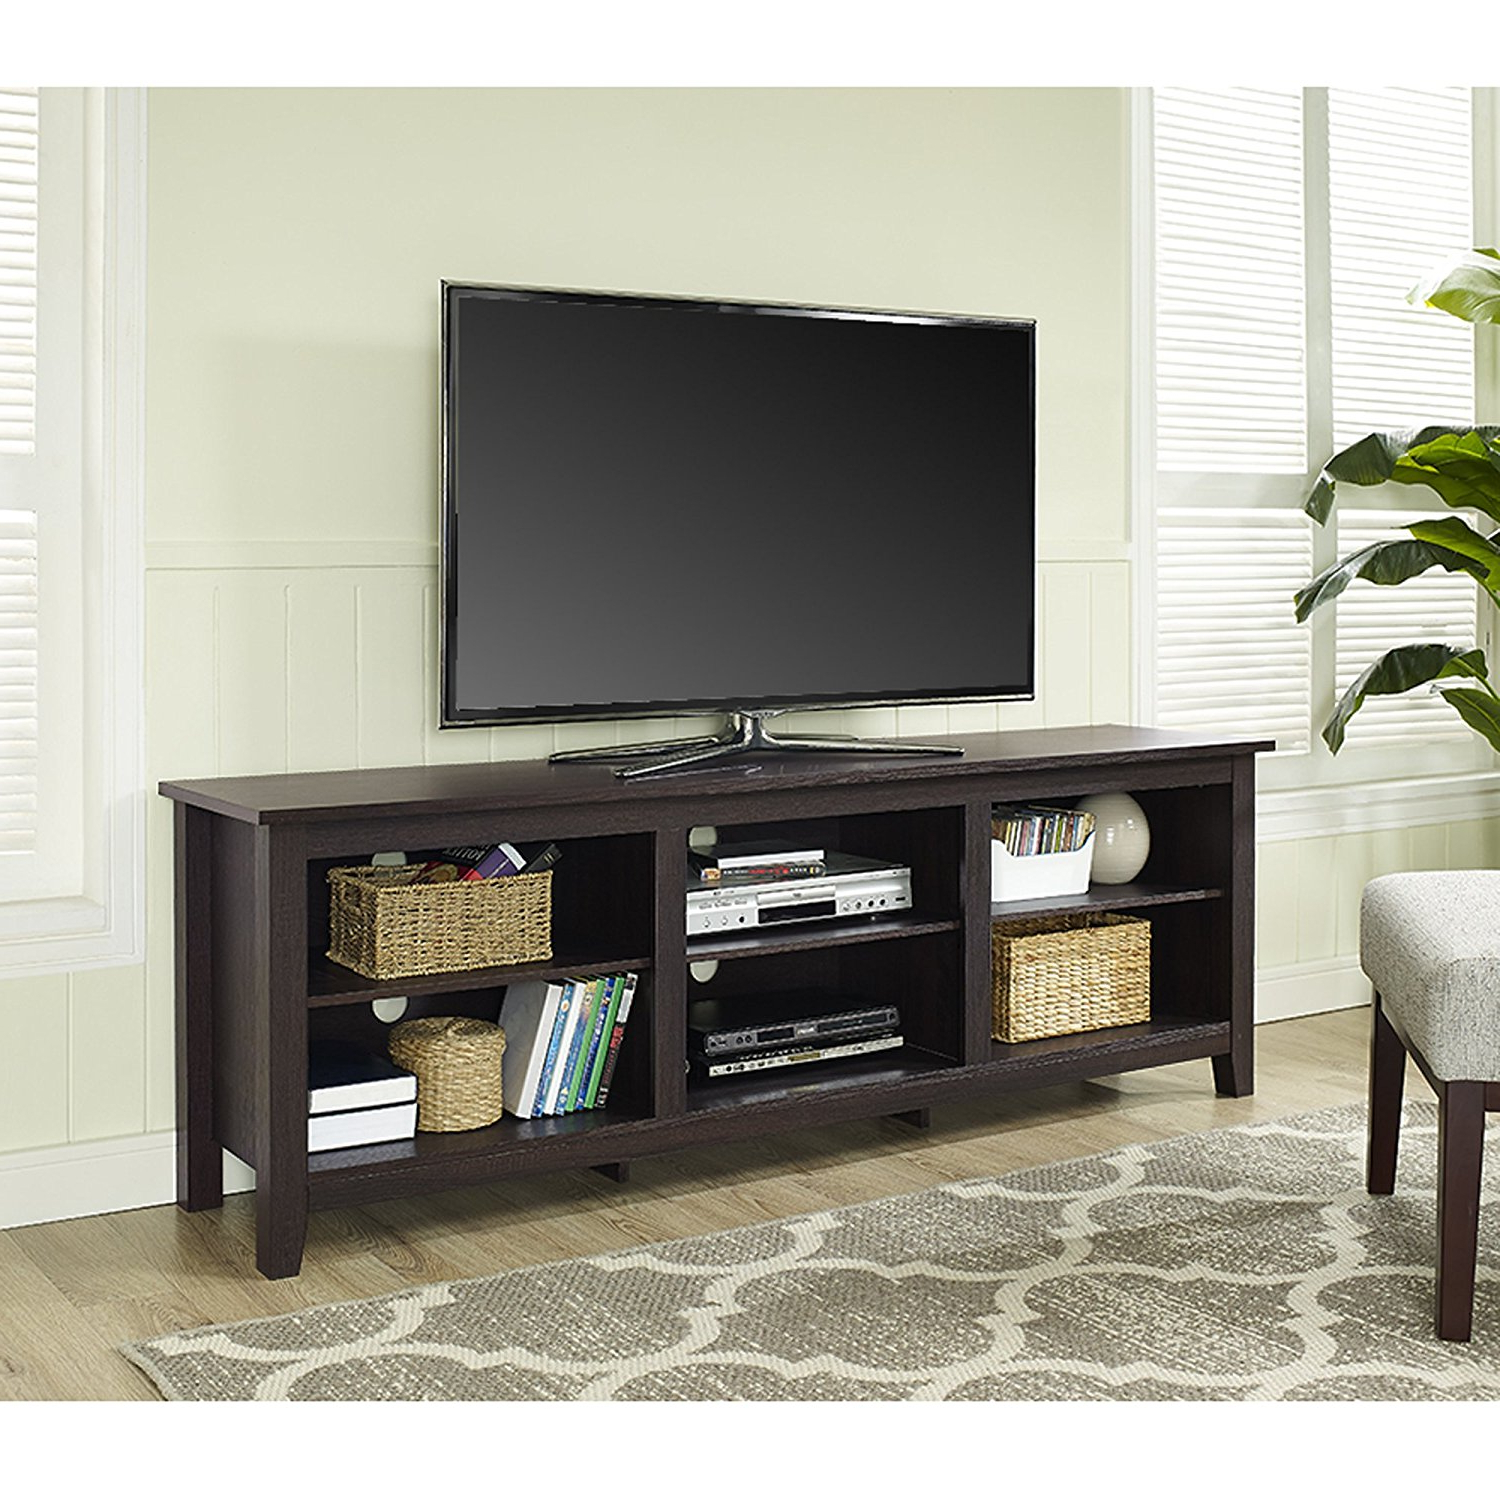 39 Inch Tv Stand 30 Wide Media Console High Corner 42 Walmart 36 Intended For Fashionable Expresso Tv Stands (View 2 of 20)